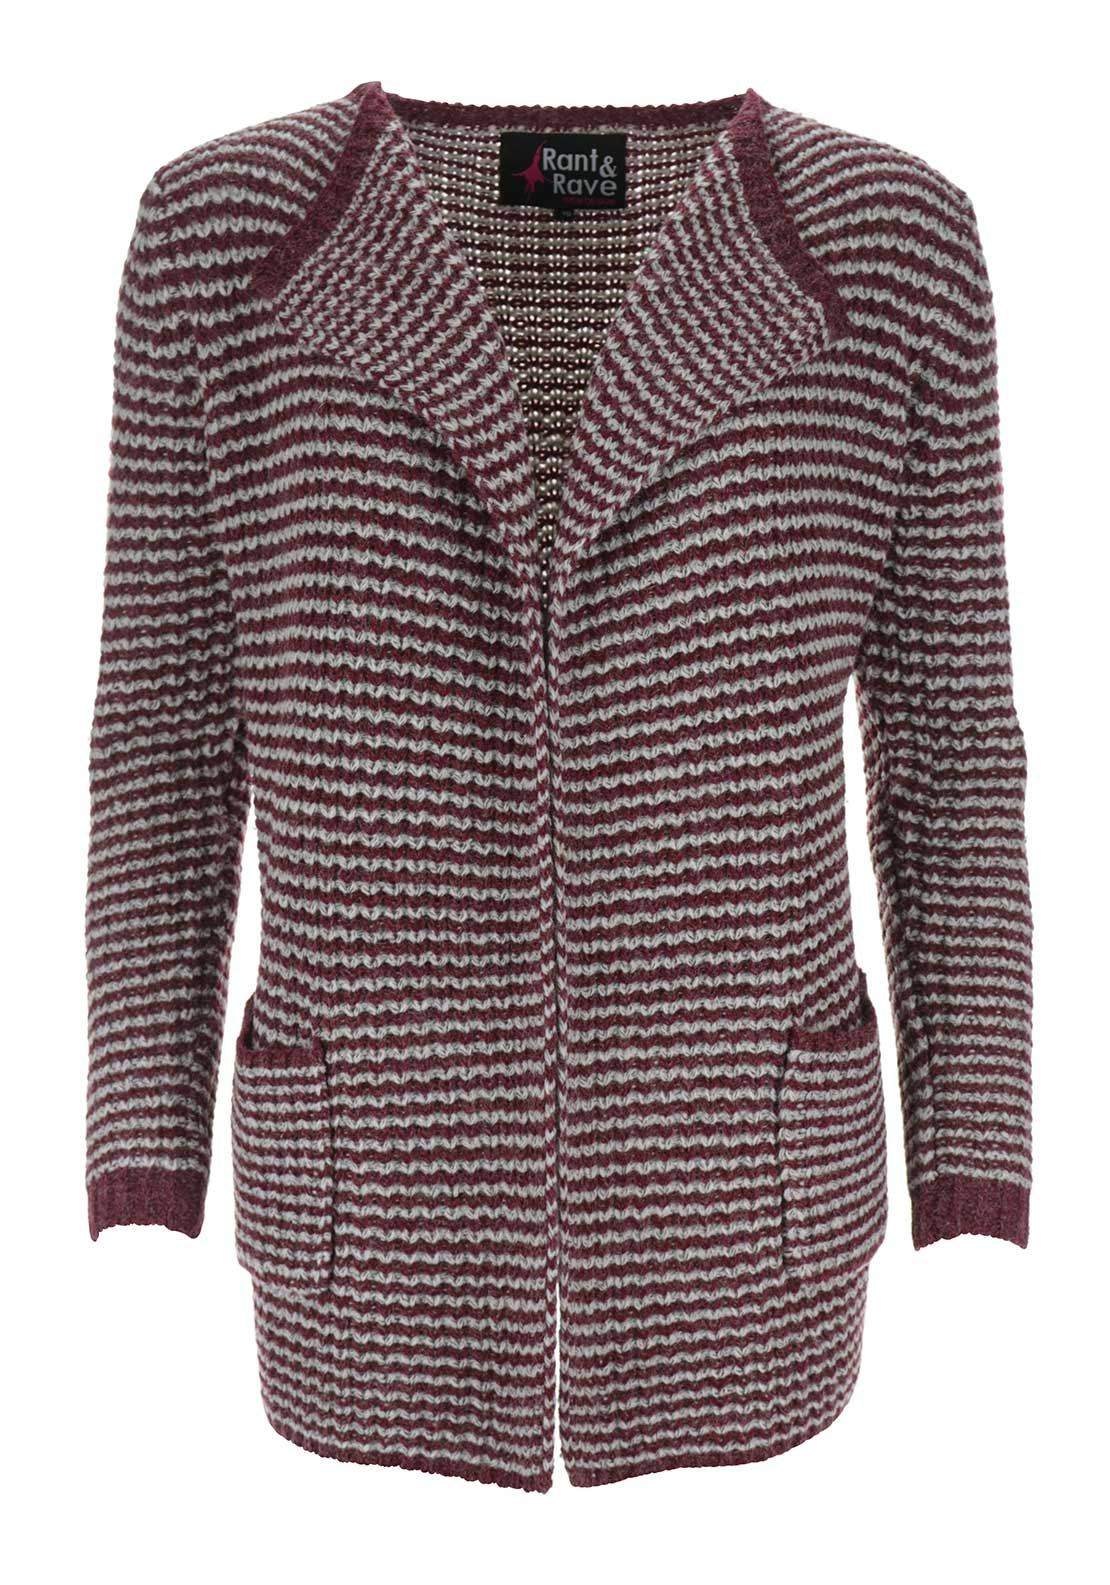 Rant & Rave Thea Two Tone Cardigan, Red